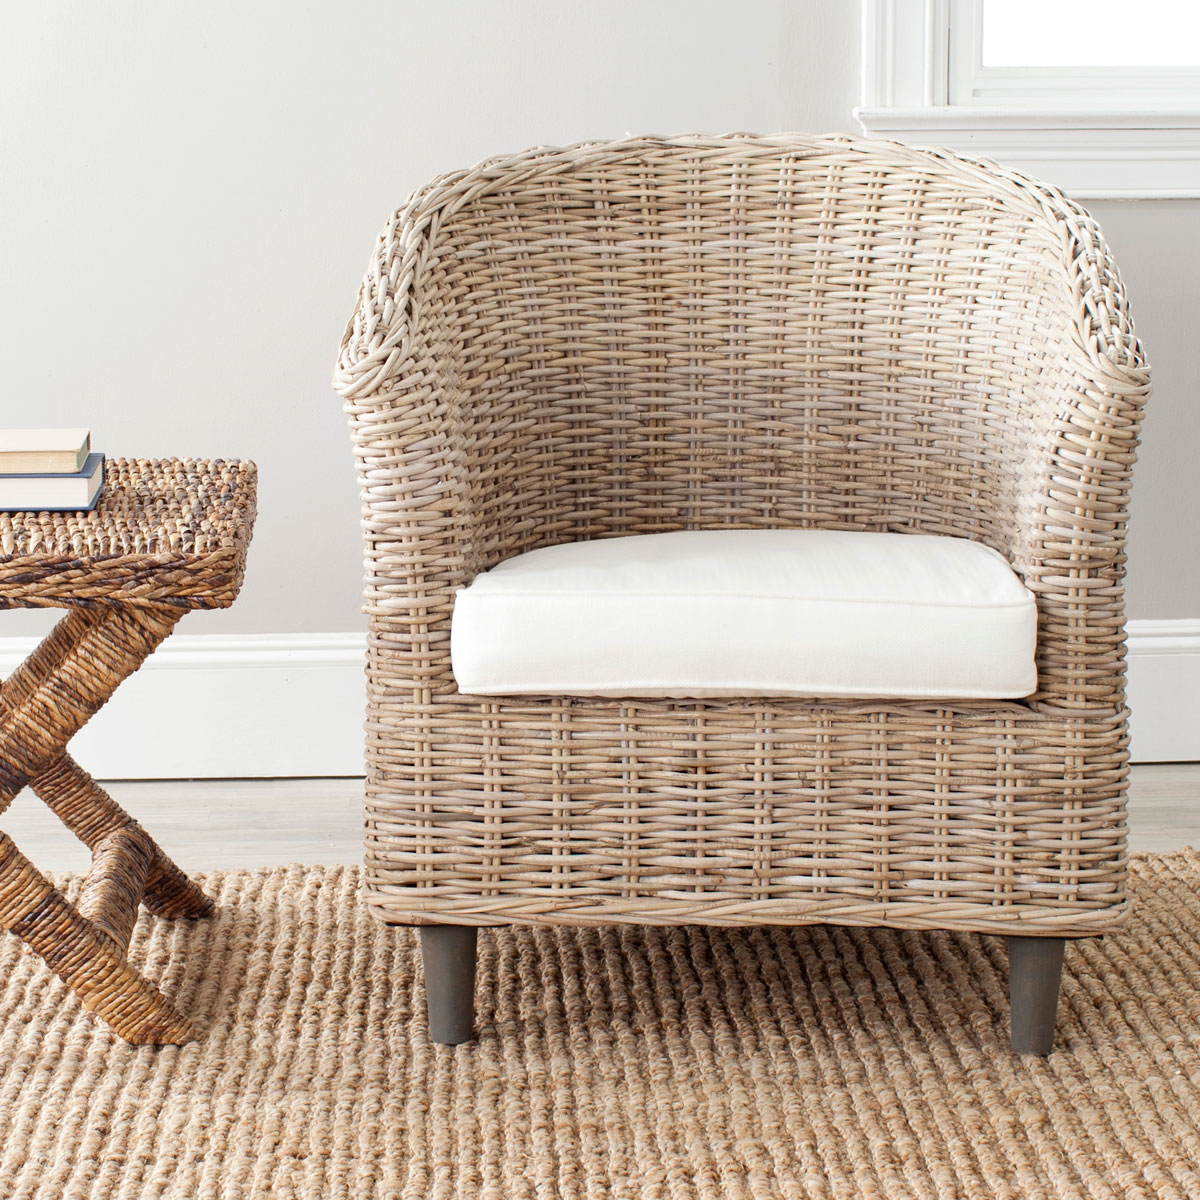 Surround Yourself With The Comfort And Transitional Style Of The Woven  Rattan Omni Barrel Chair. Crafted With Mango Wood And Rattan In A Natural  Finish With ...